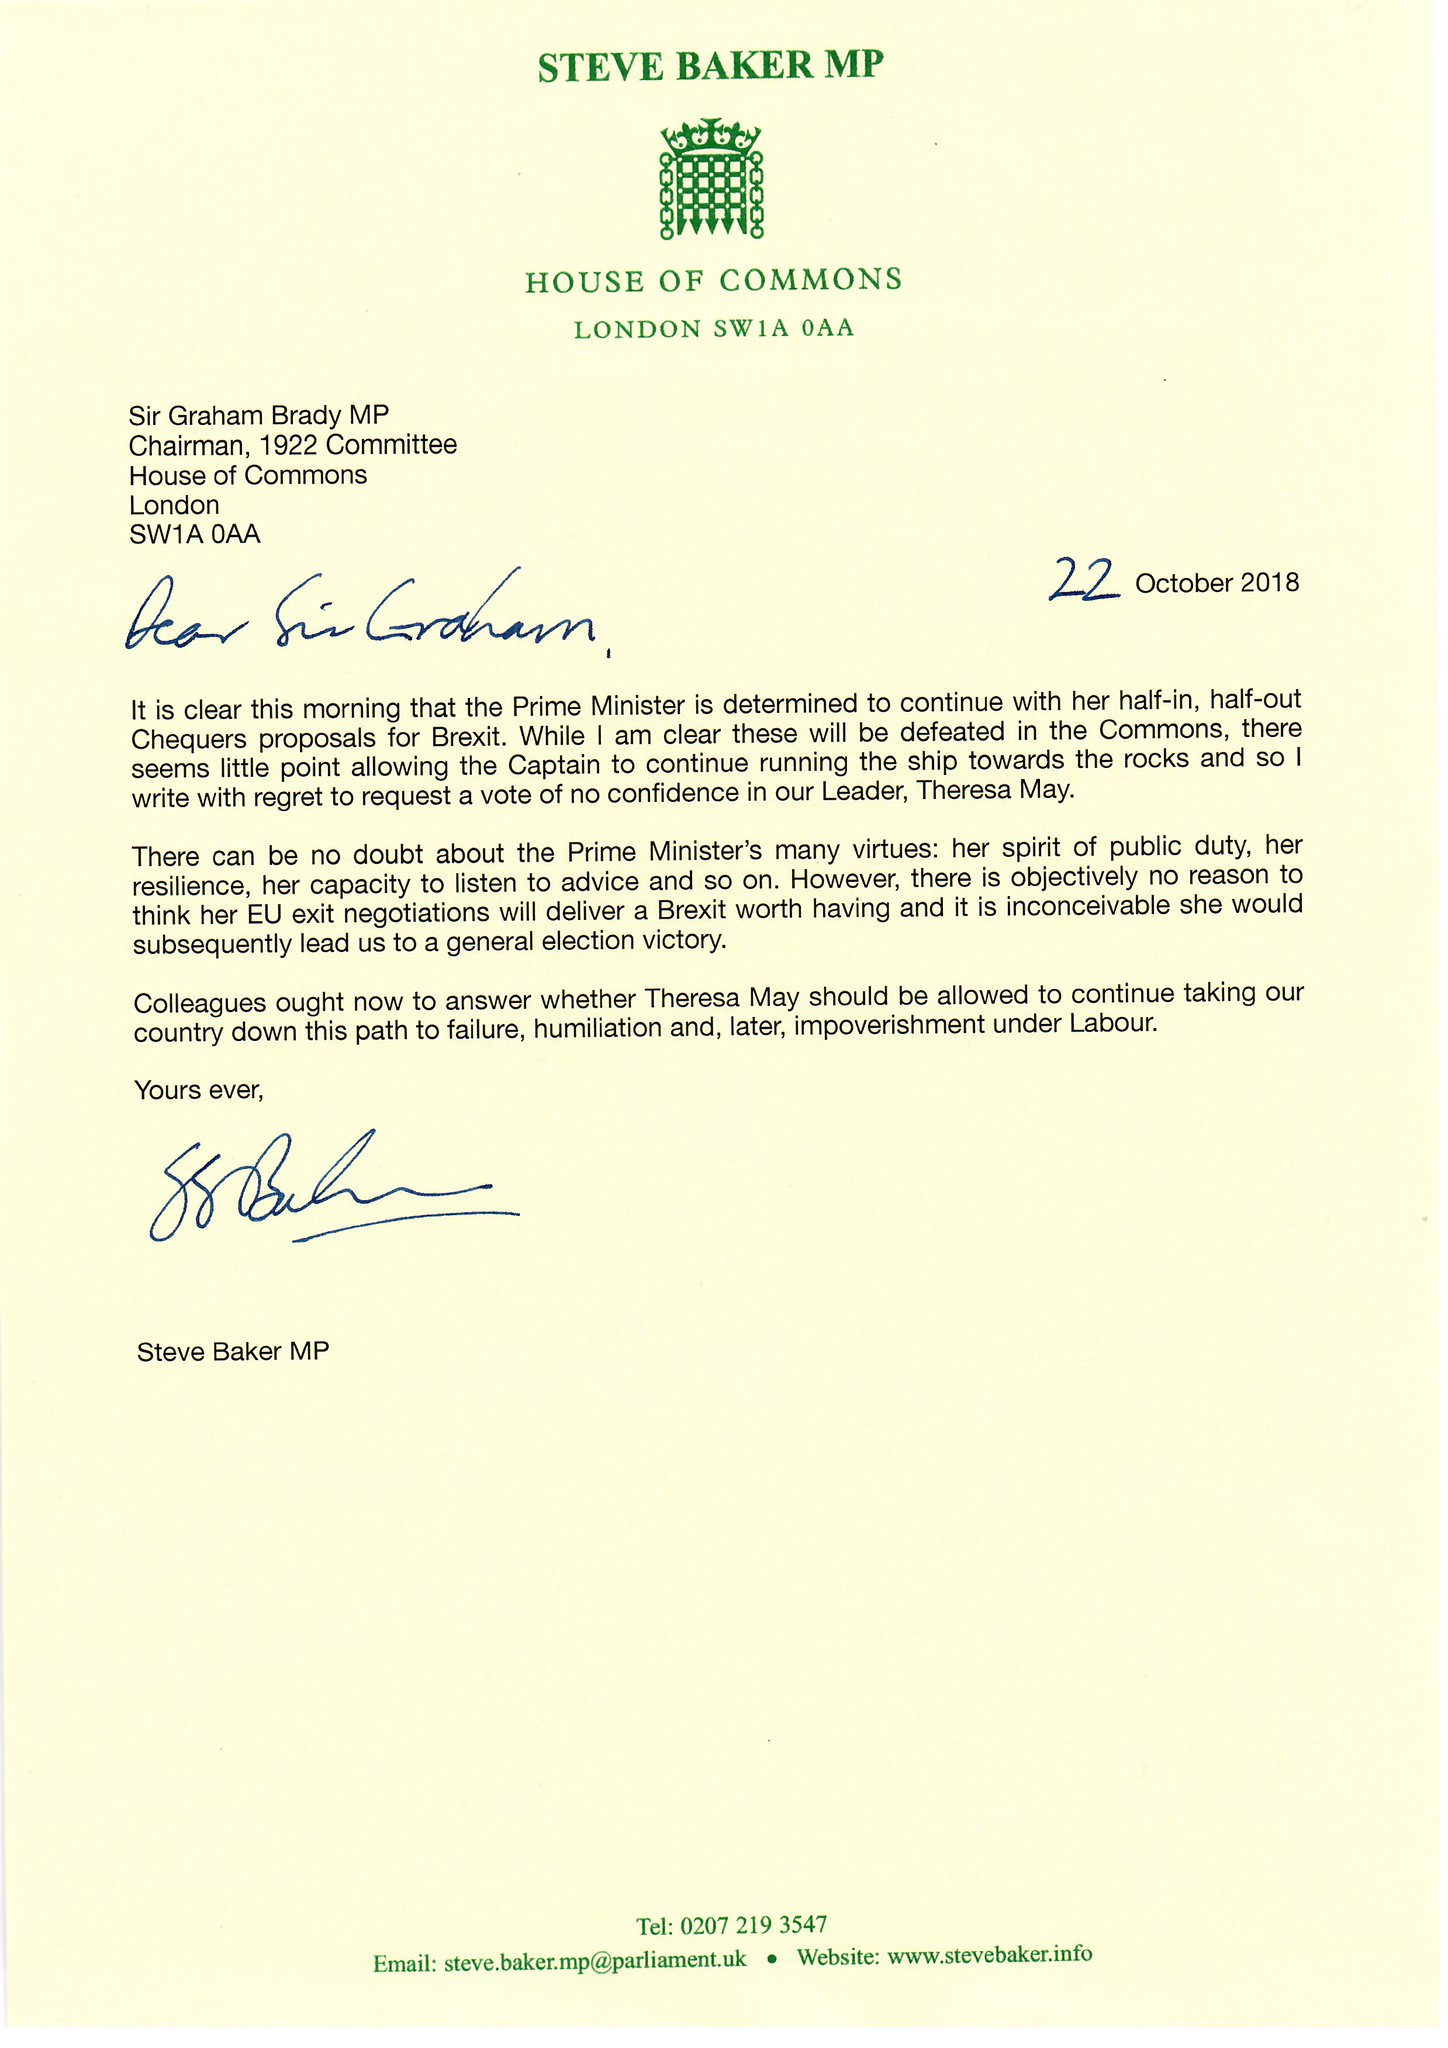 Resignation Letter To Committee Chairman From Vice Chairman Uk